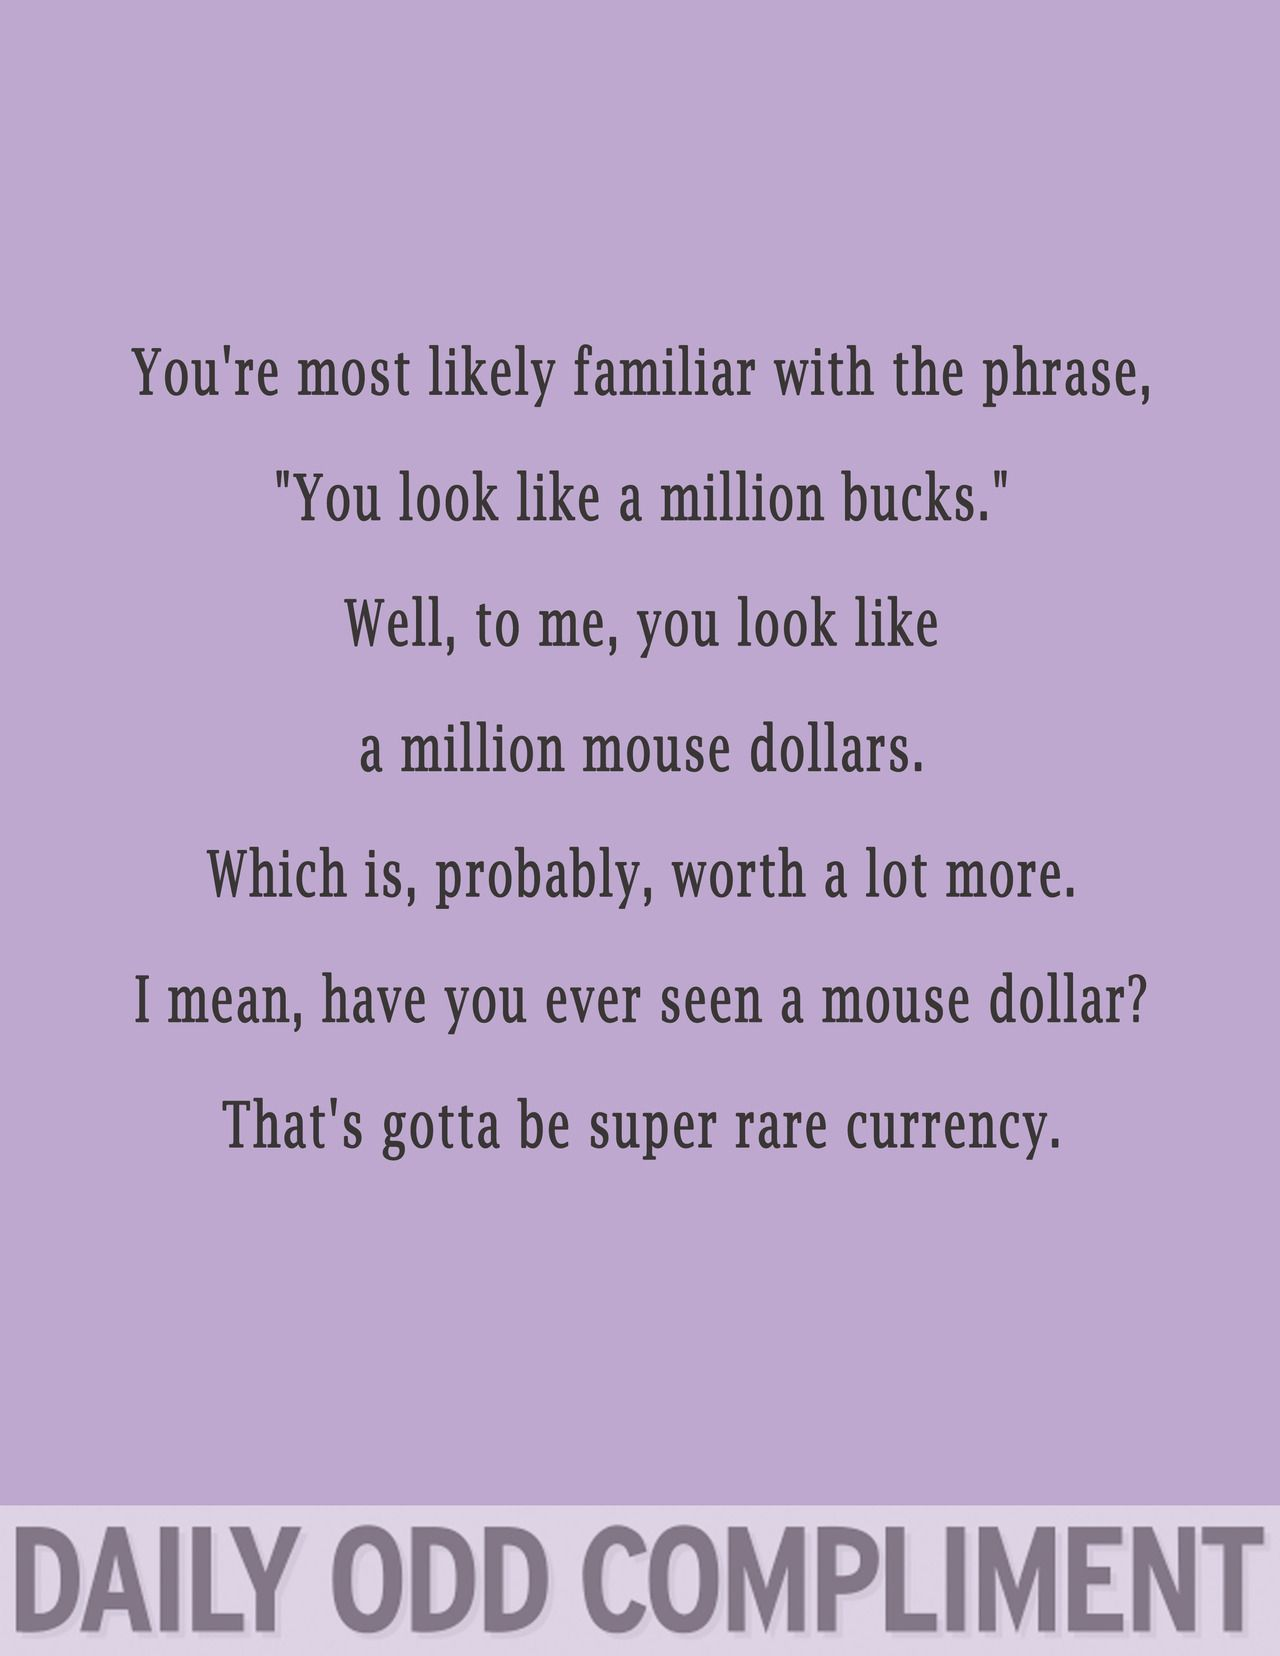 Daily Odd Compliment (rare,funny,daily odd compliment)